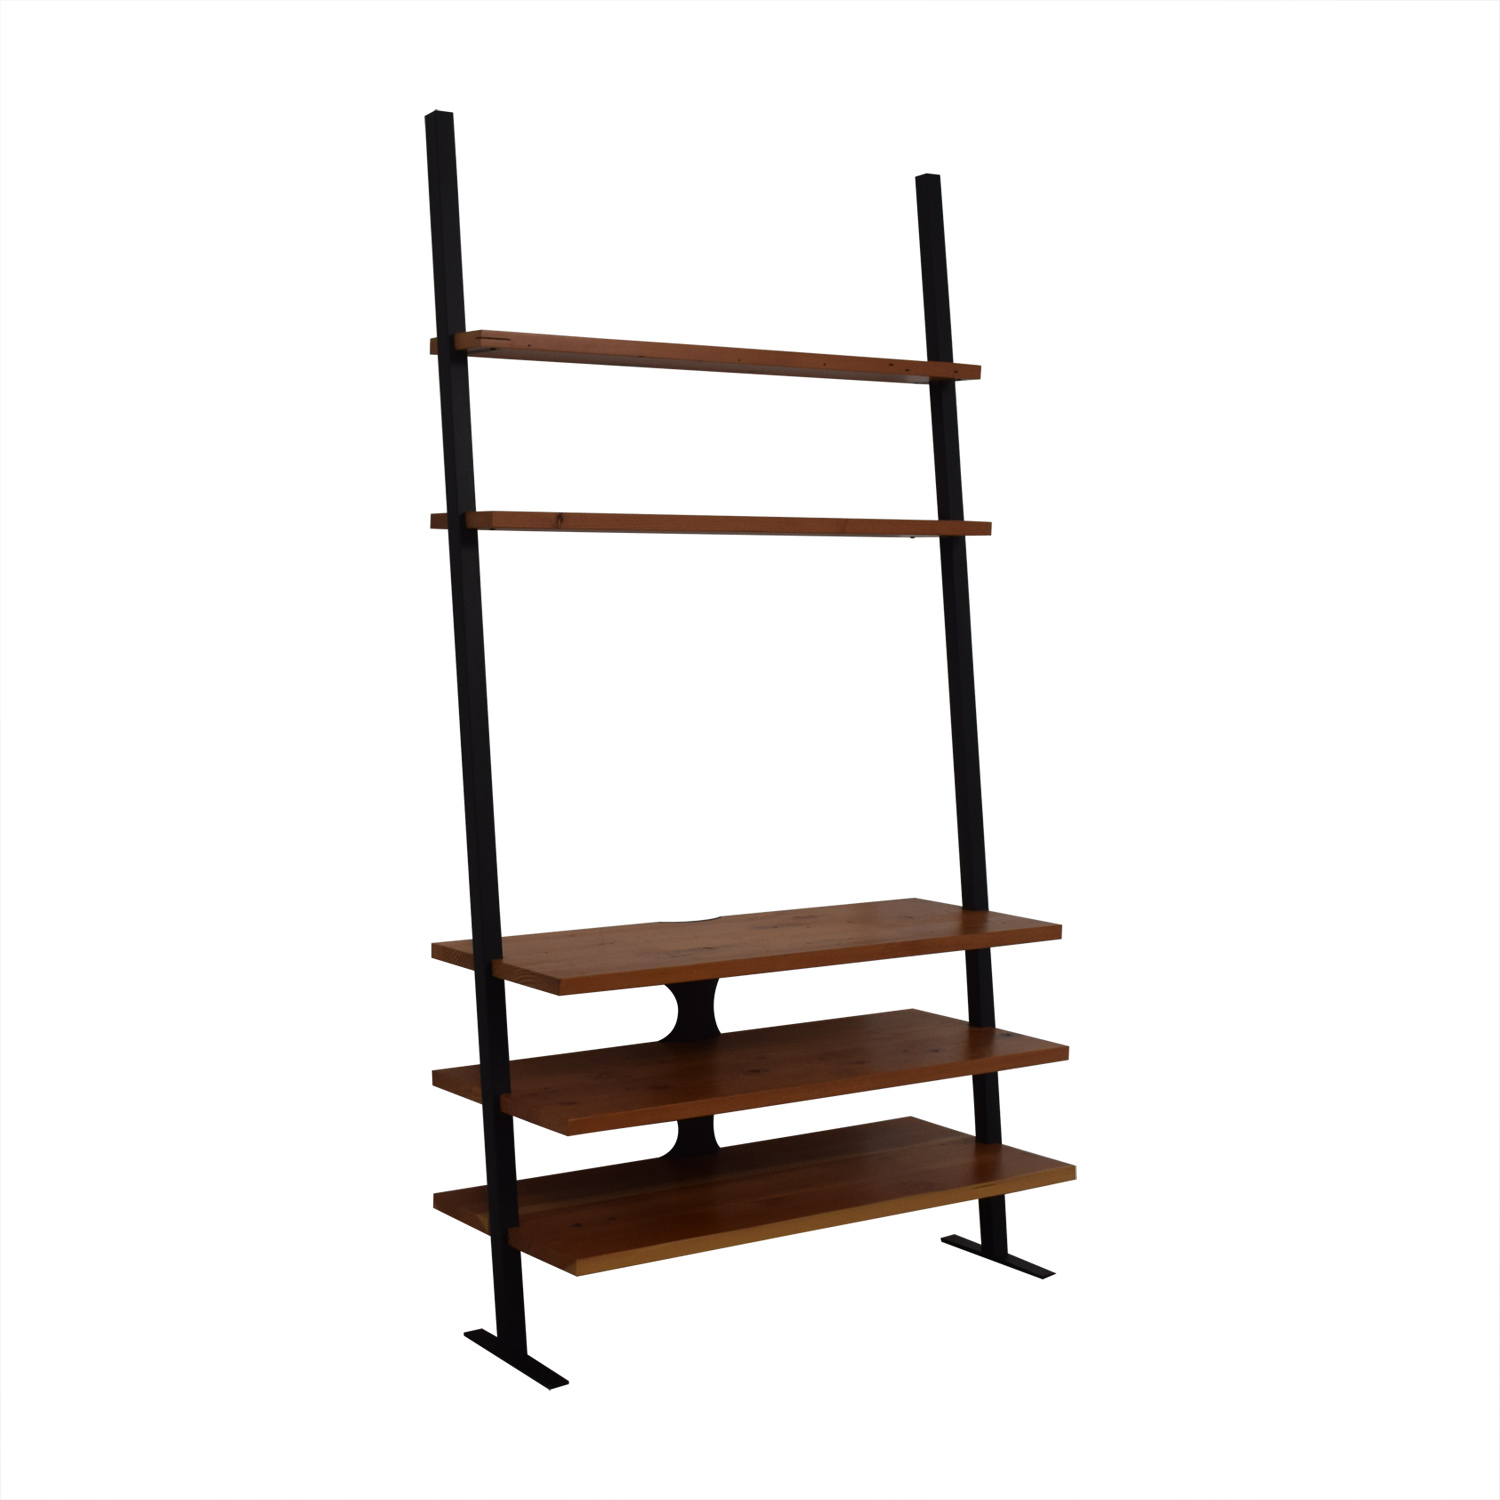 shop Room & Board Reclaimed Wood Leaning Media Shelf Room & Board Storage